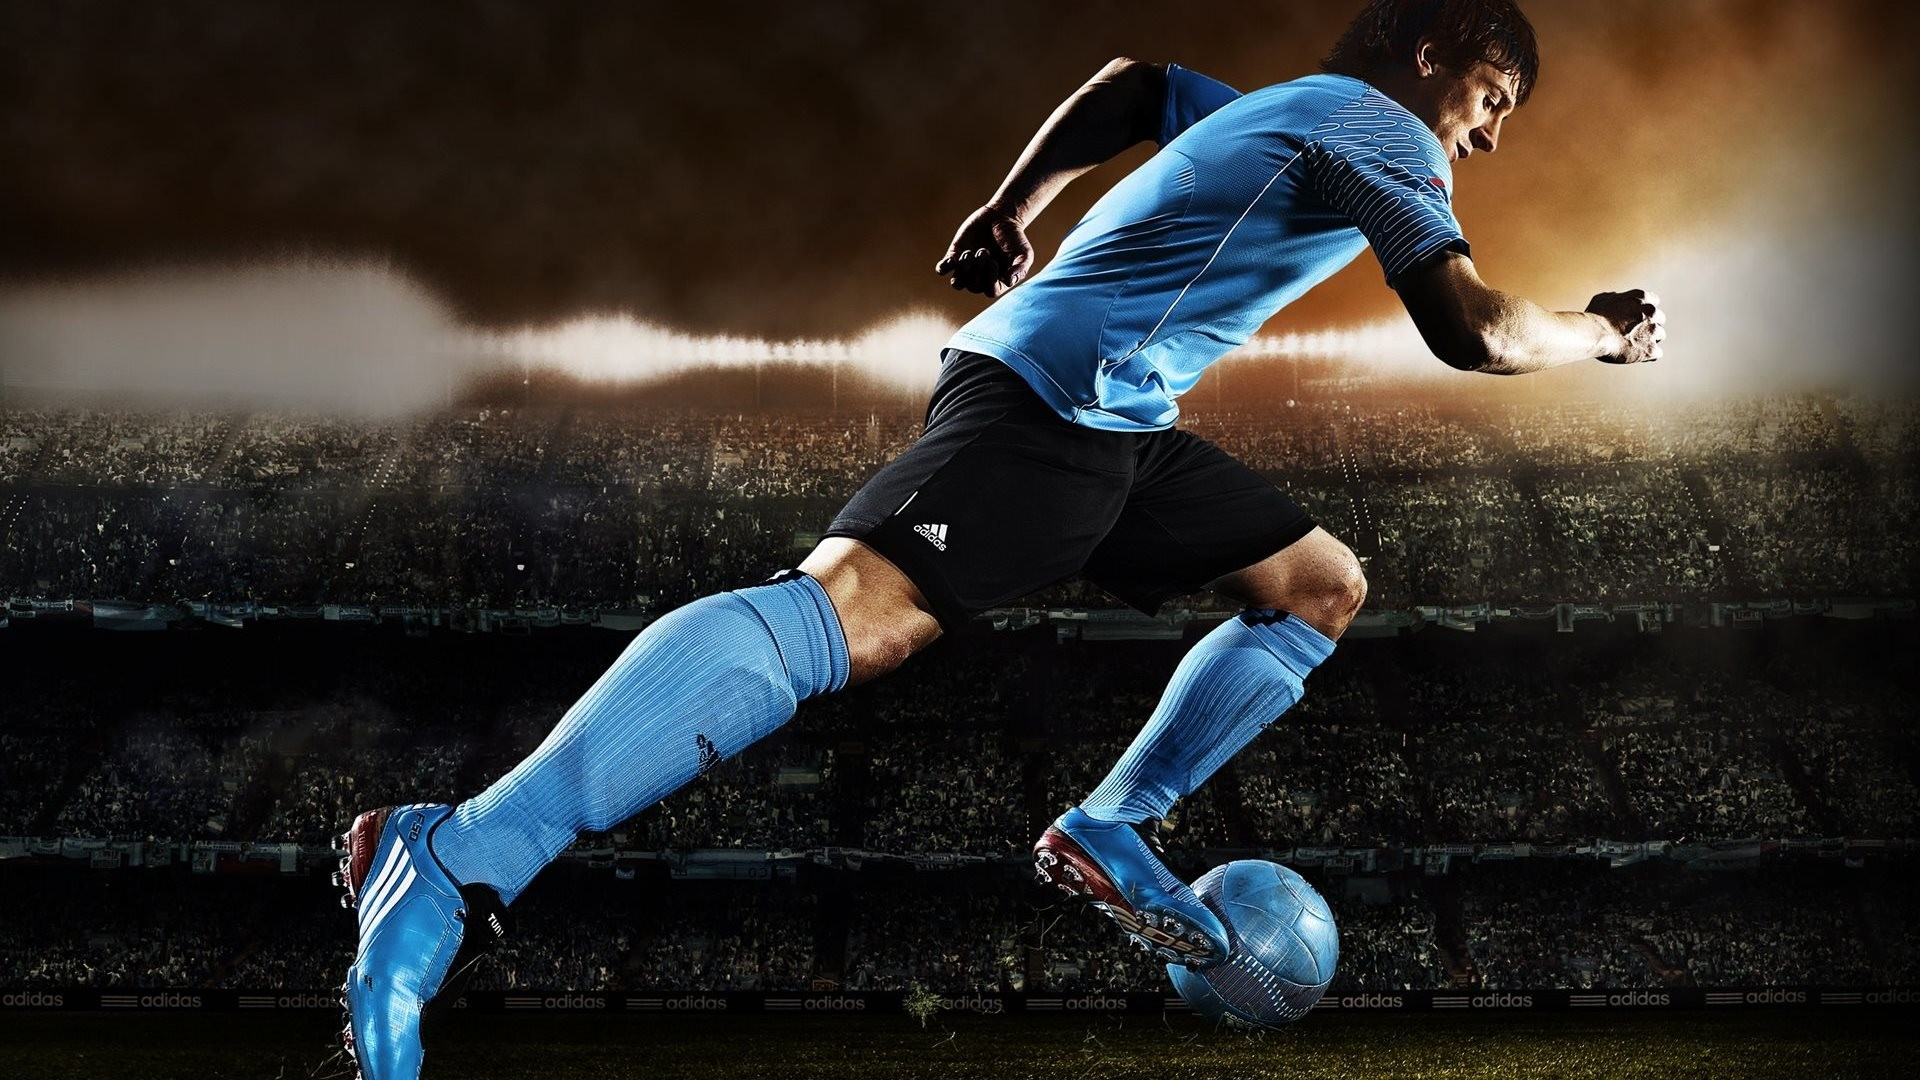 soccer players wallpapers hd, hd football wallpapers